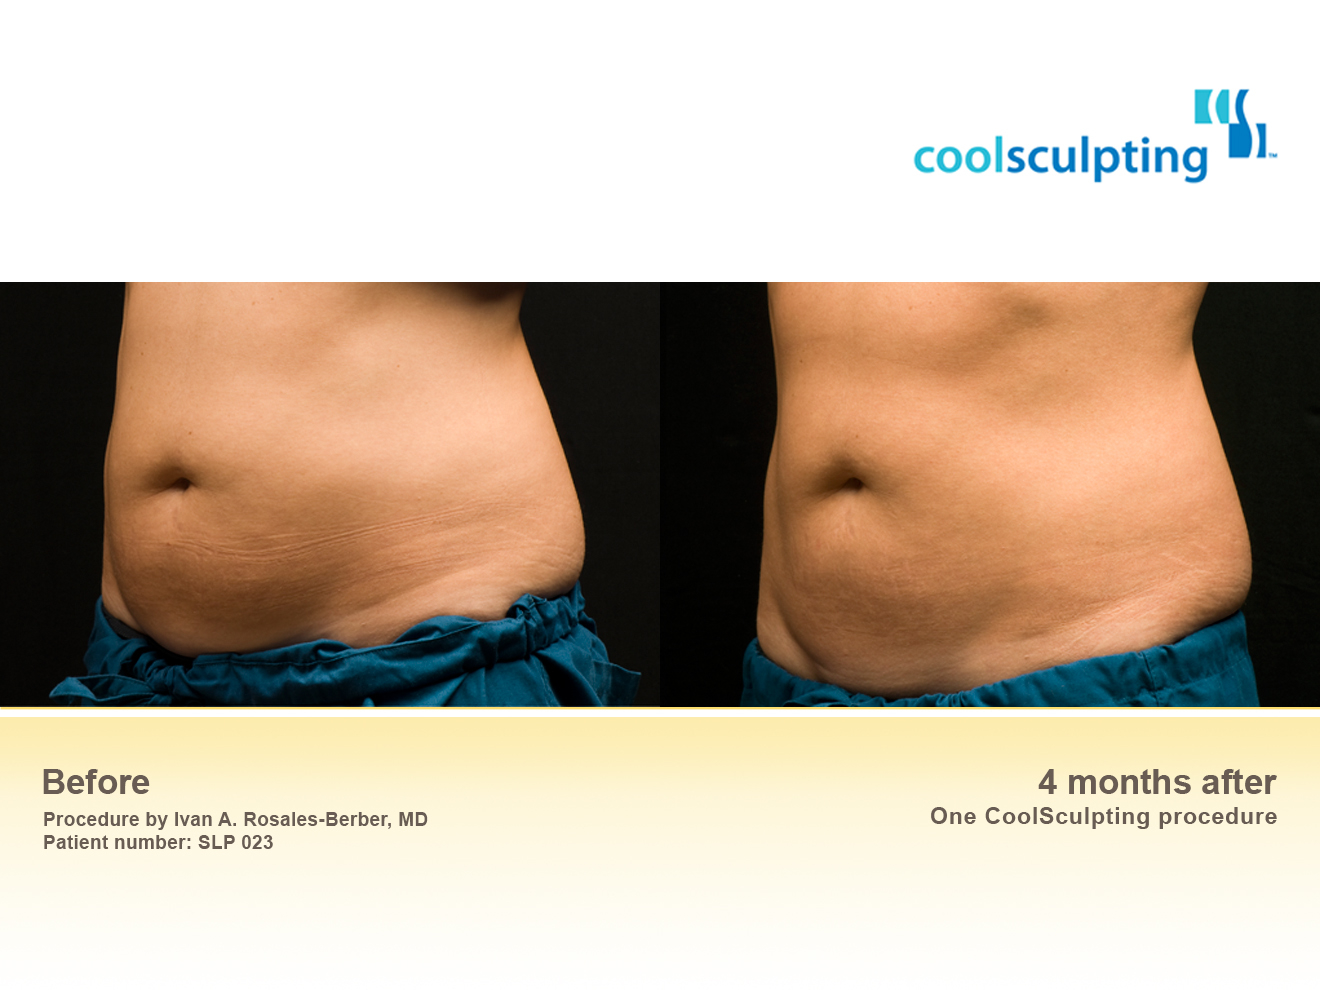 san diego dermatologists coolsculpting - HD 1320×990